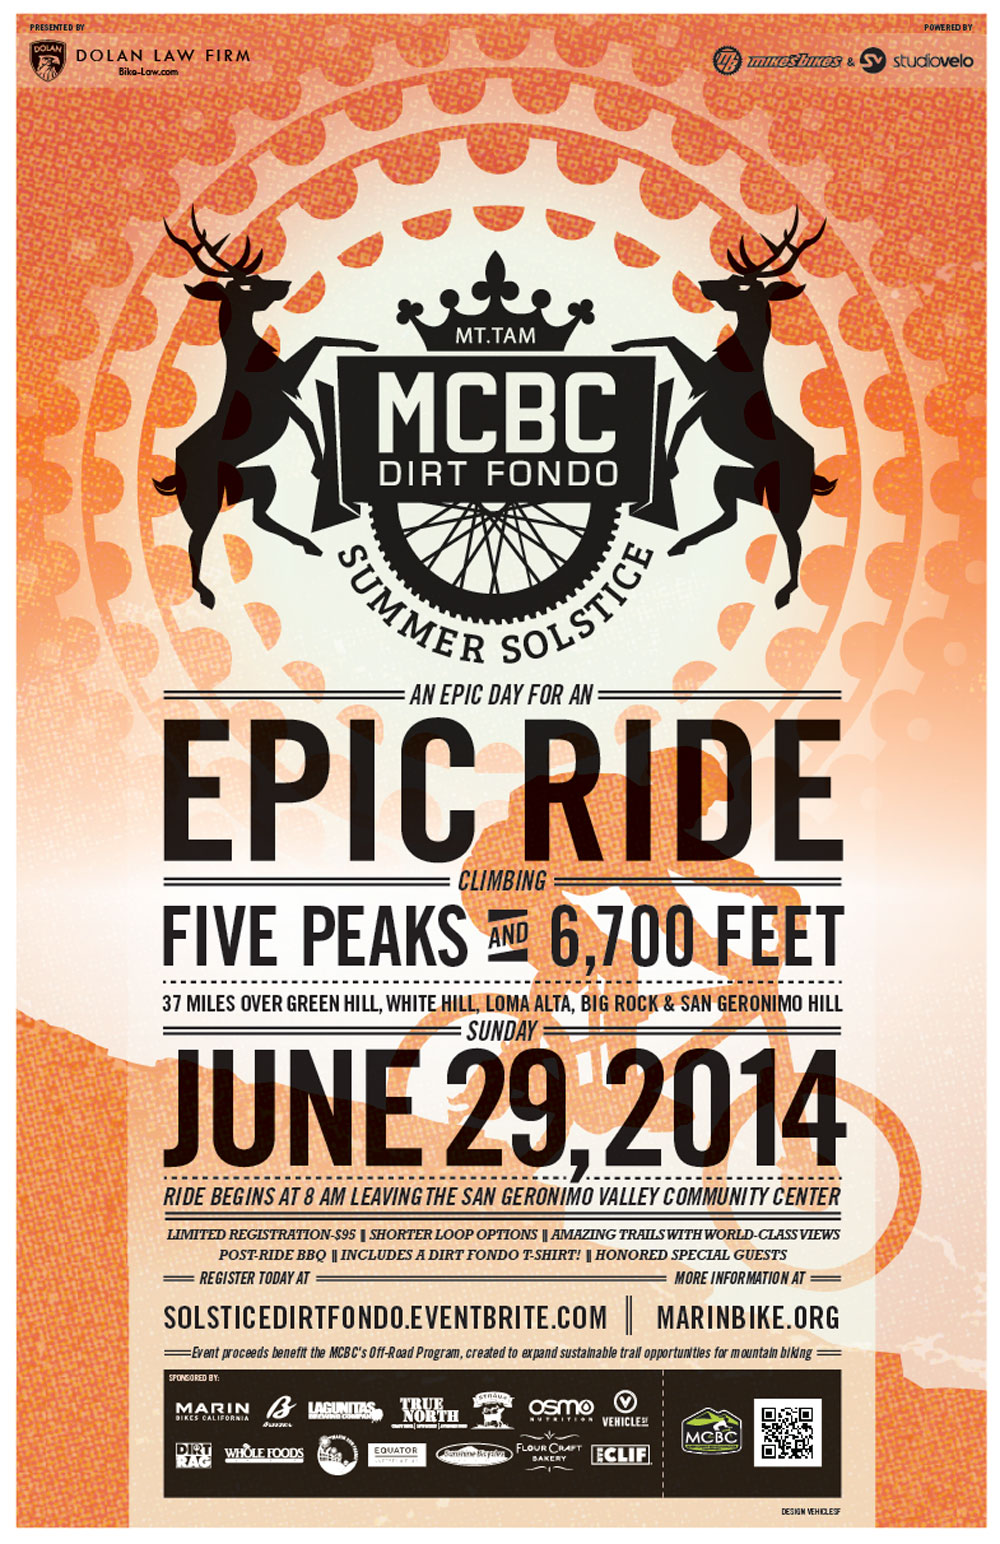 Dirt Fondo 2014 poster announcing date and event with gradient graphic designs and deer illustrations